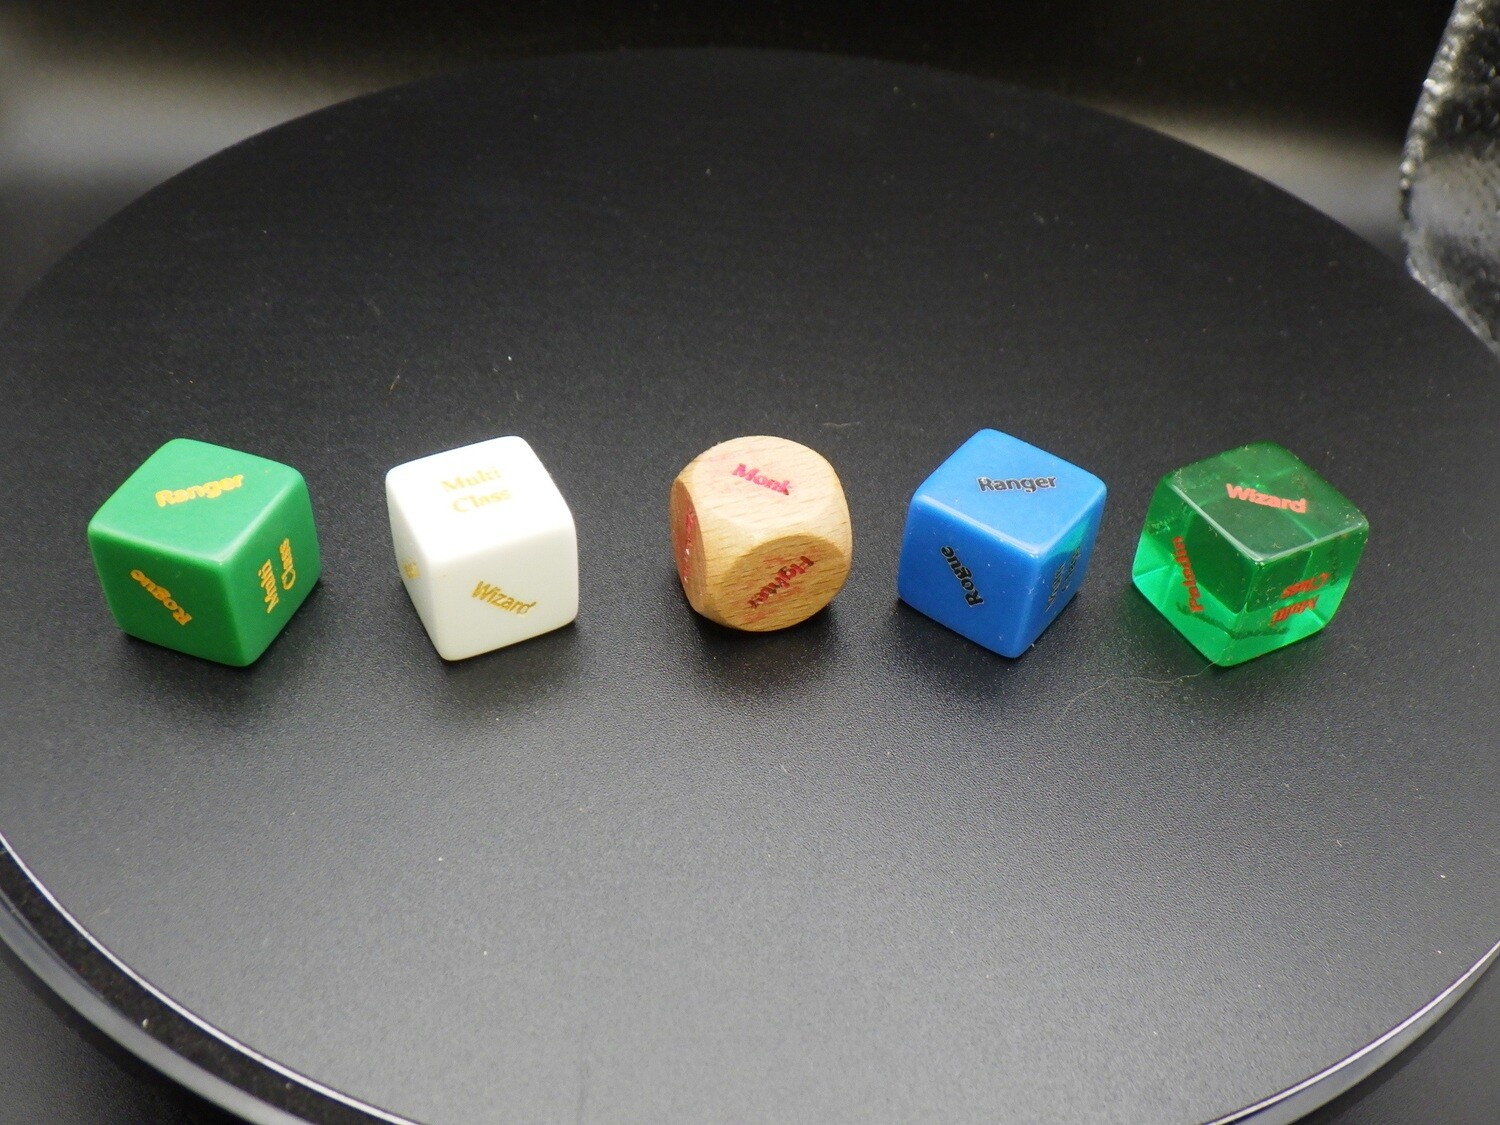 Custom RPG Fantasy Class Die V2 16mm Paladin Multiclass Ranger Sorcerer Rogue Wizard Gaming Tabletop RPG Dice Roleplay CCG Board Cards Games